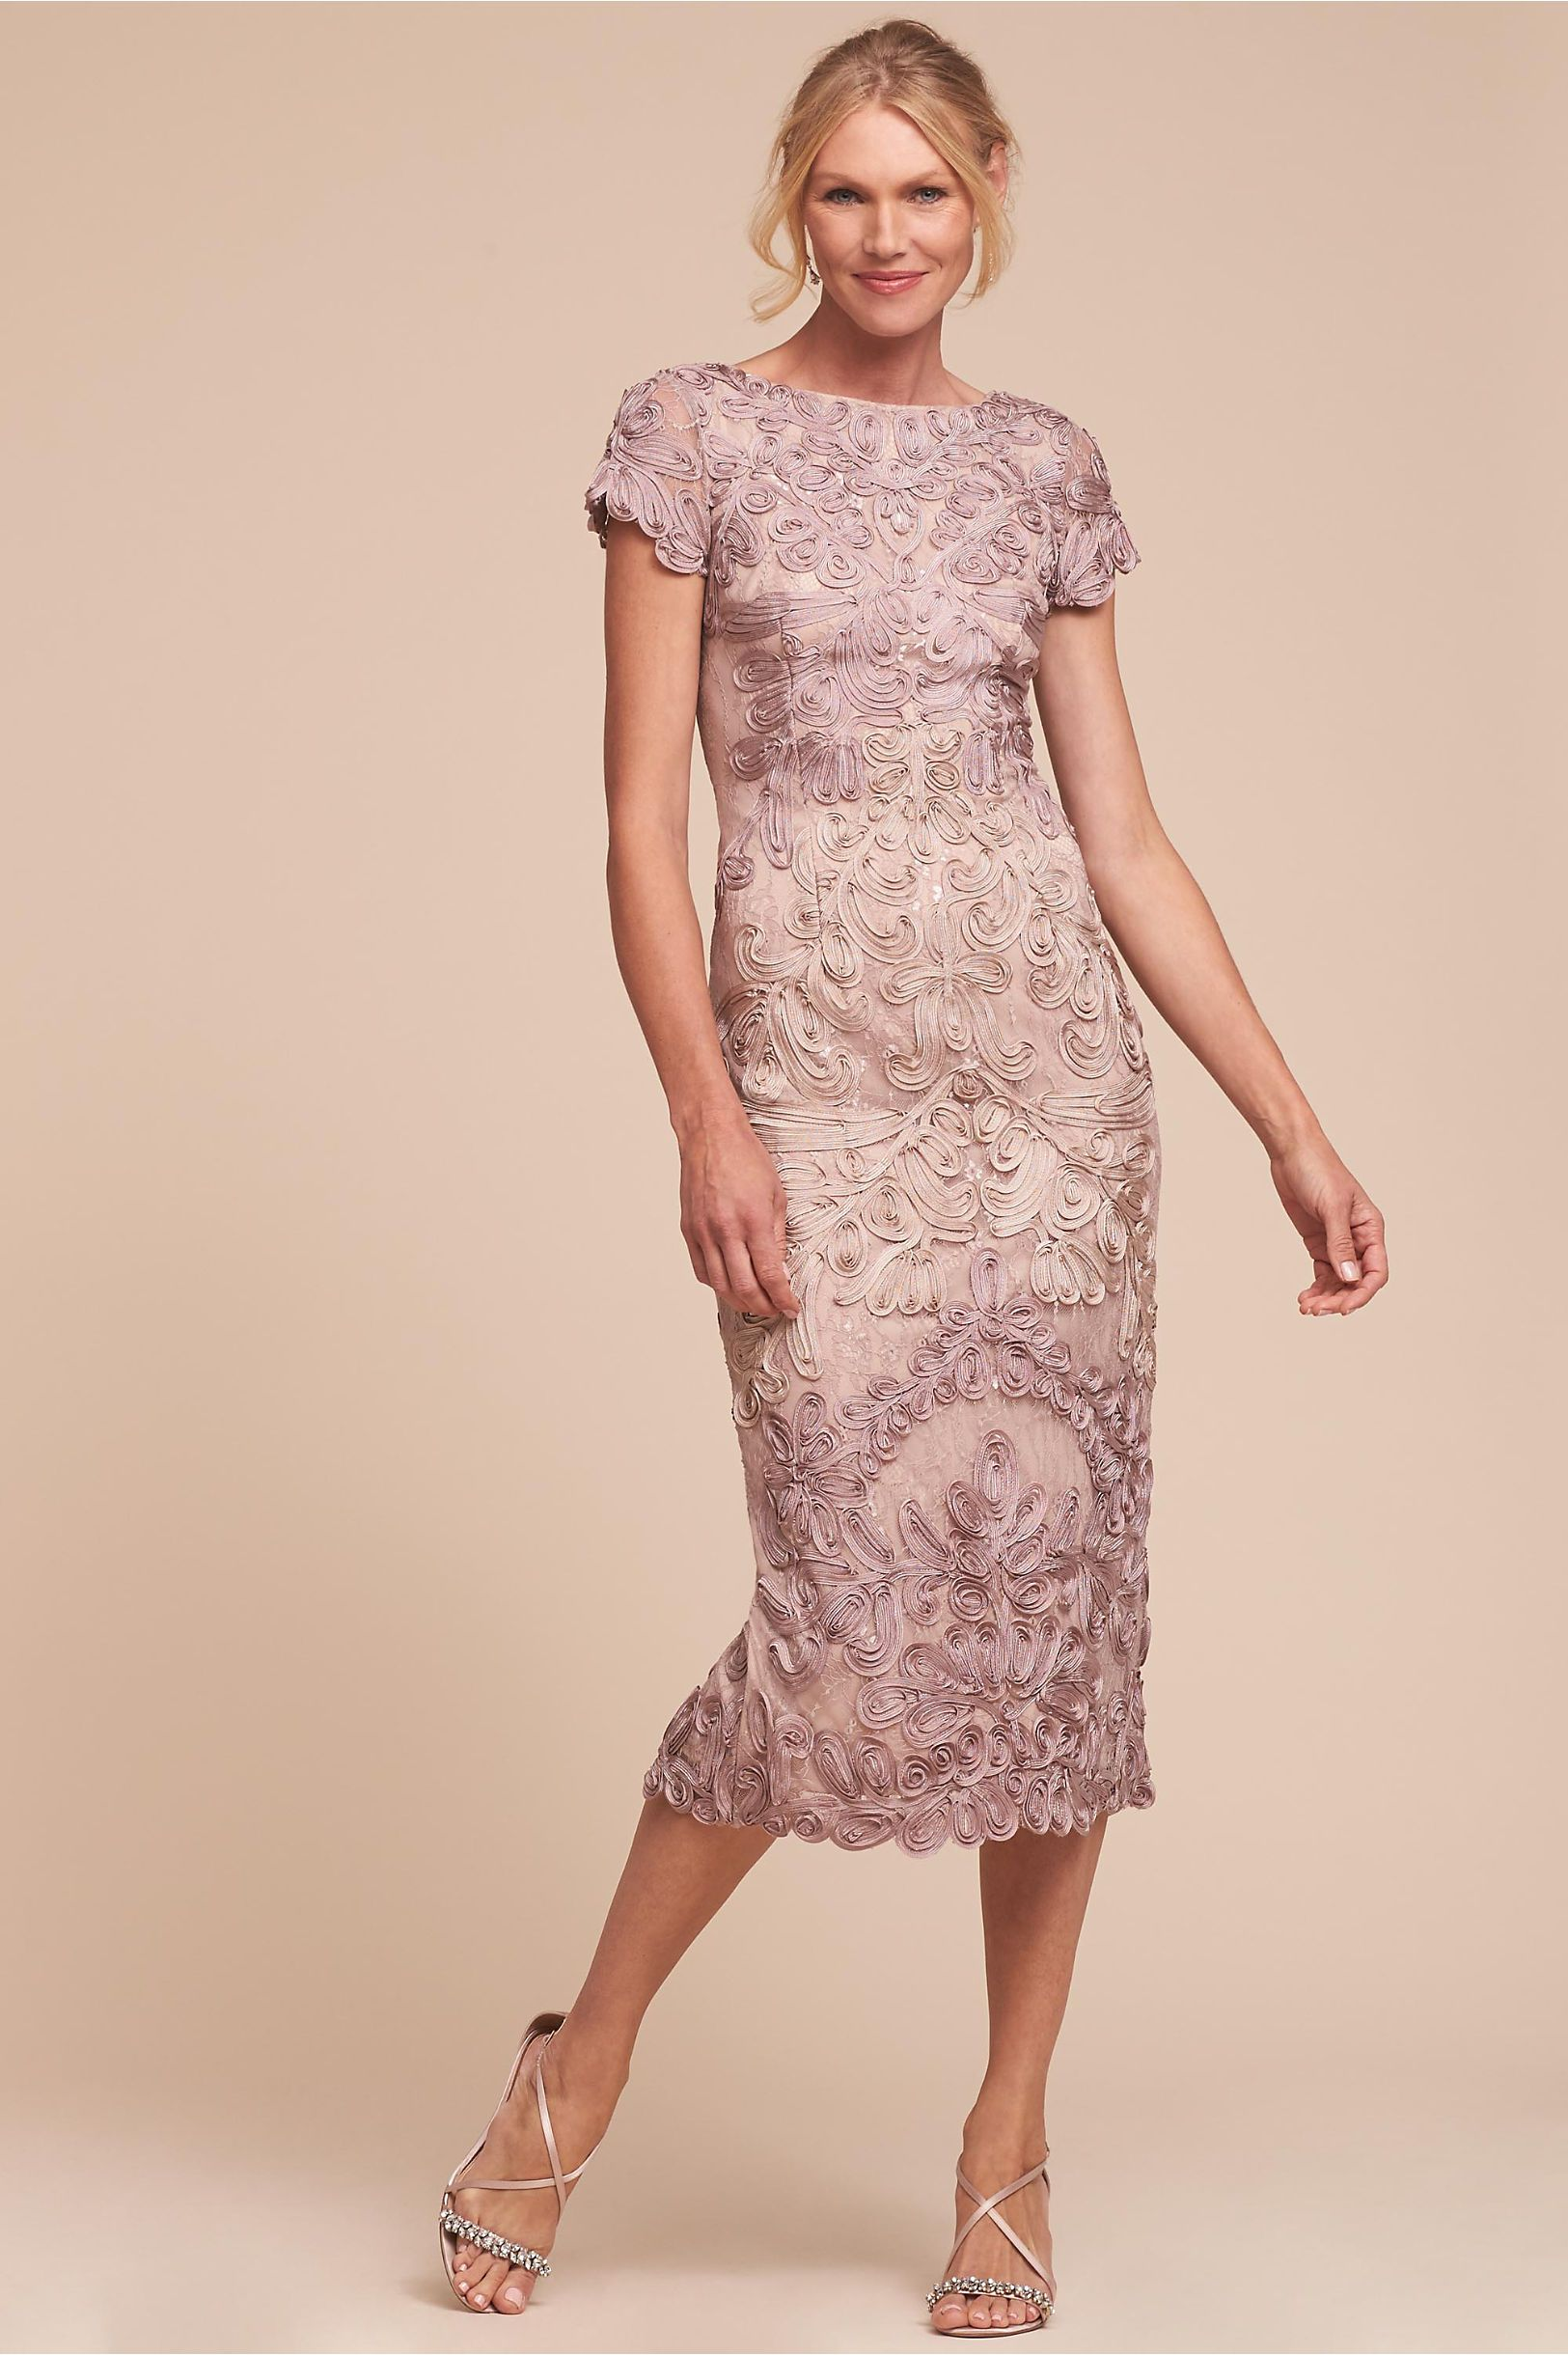 BHLDN Santiago Dress Pink/Sand in Occasion Dresses | BHLDN | Dress ...